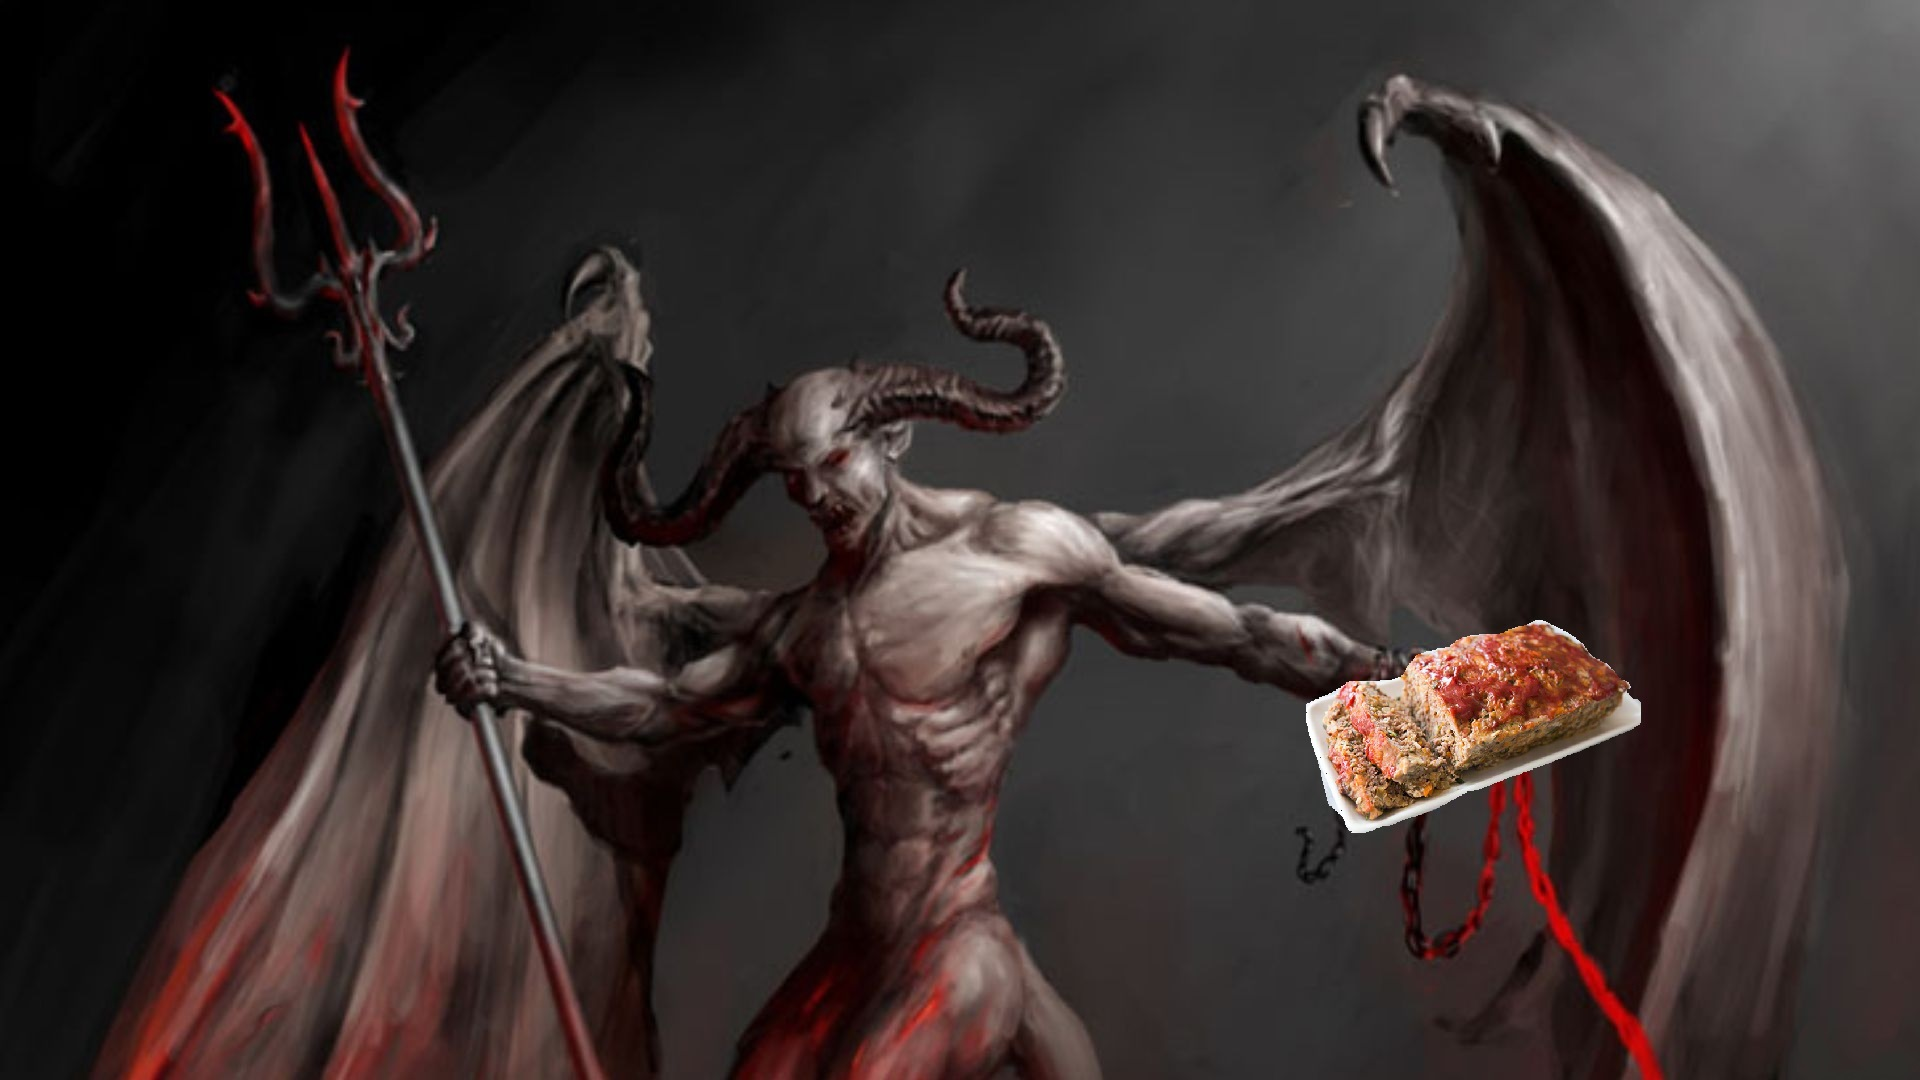 Mephistopheles Mixed Meat Mystery Meat Meatloaf Meat